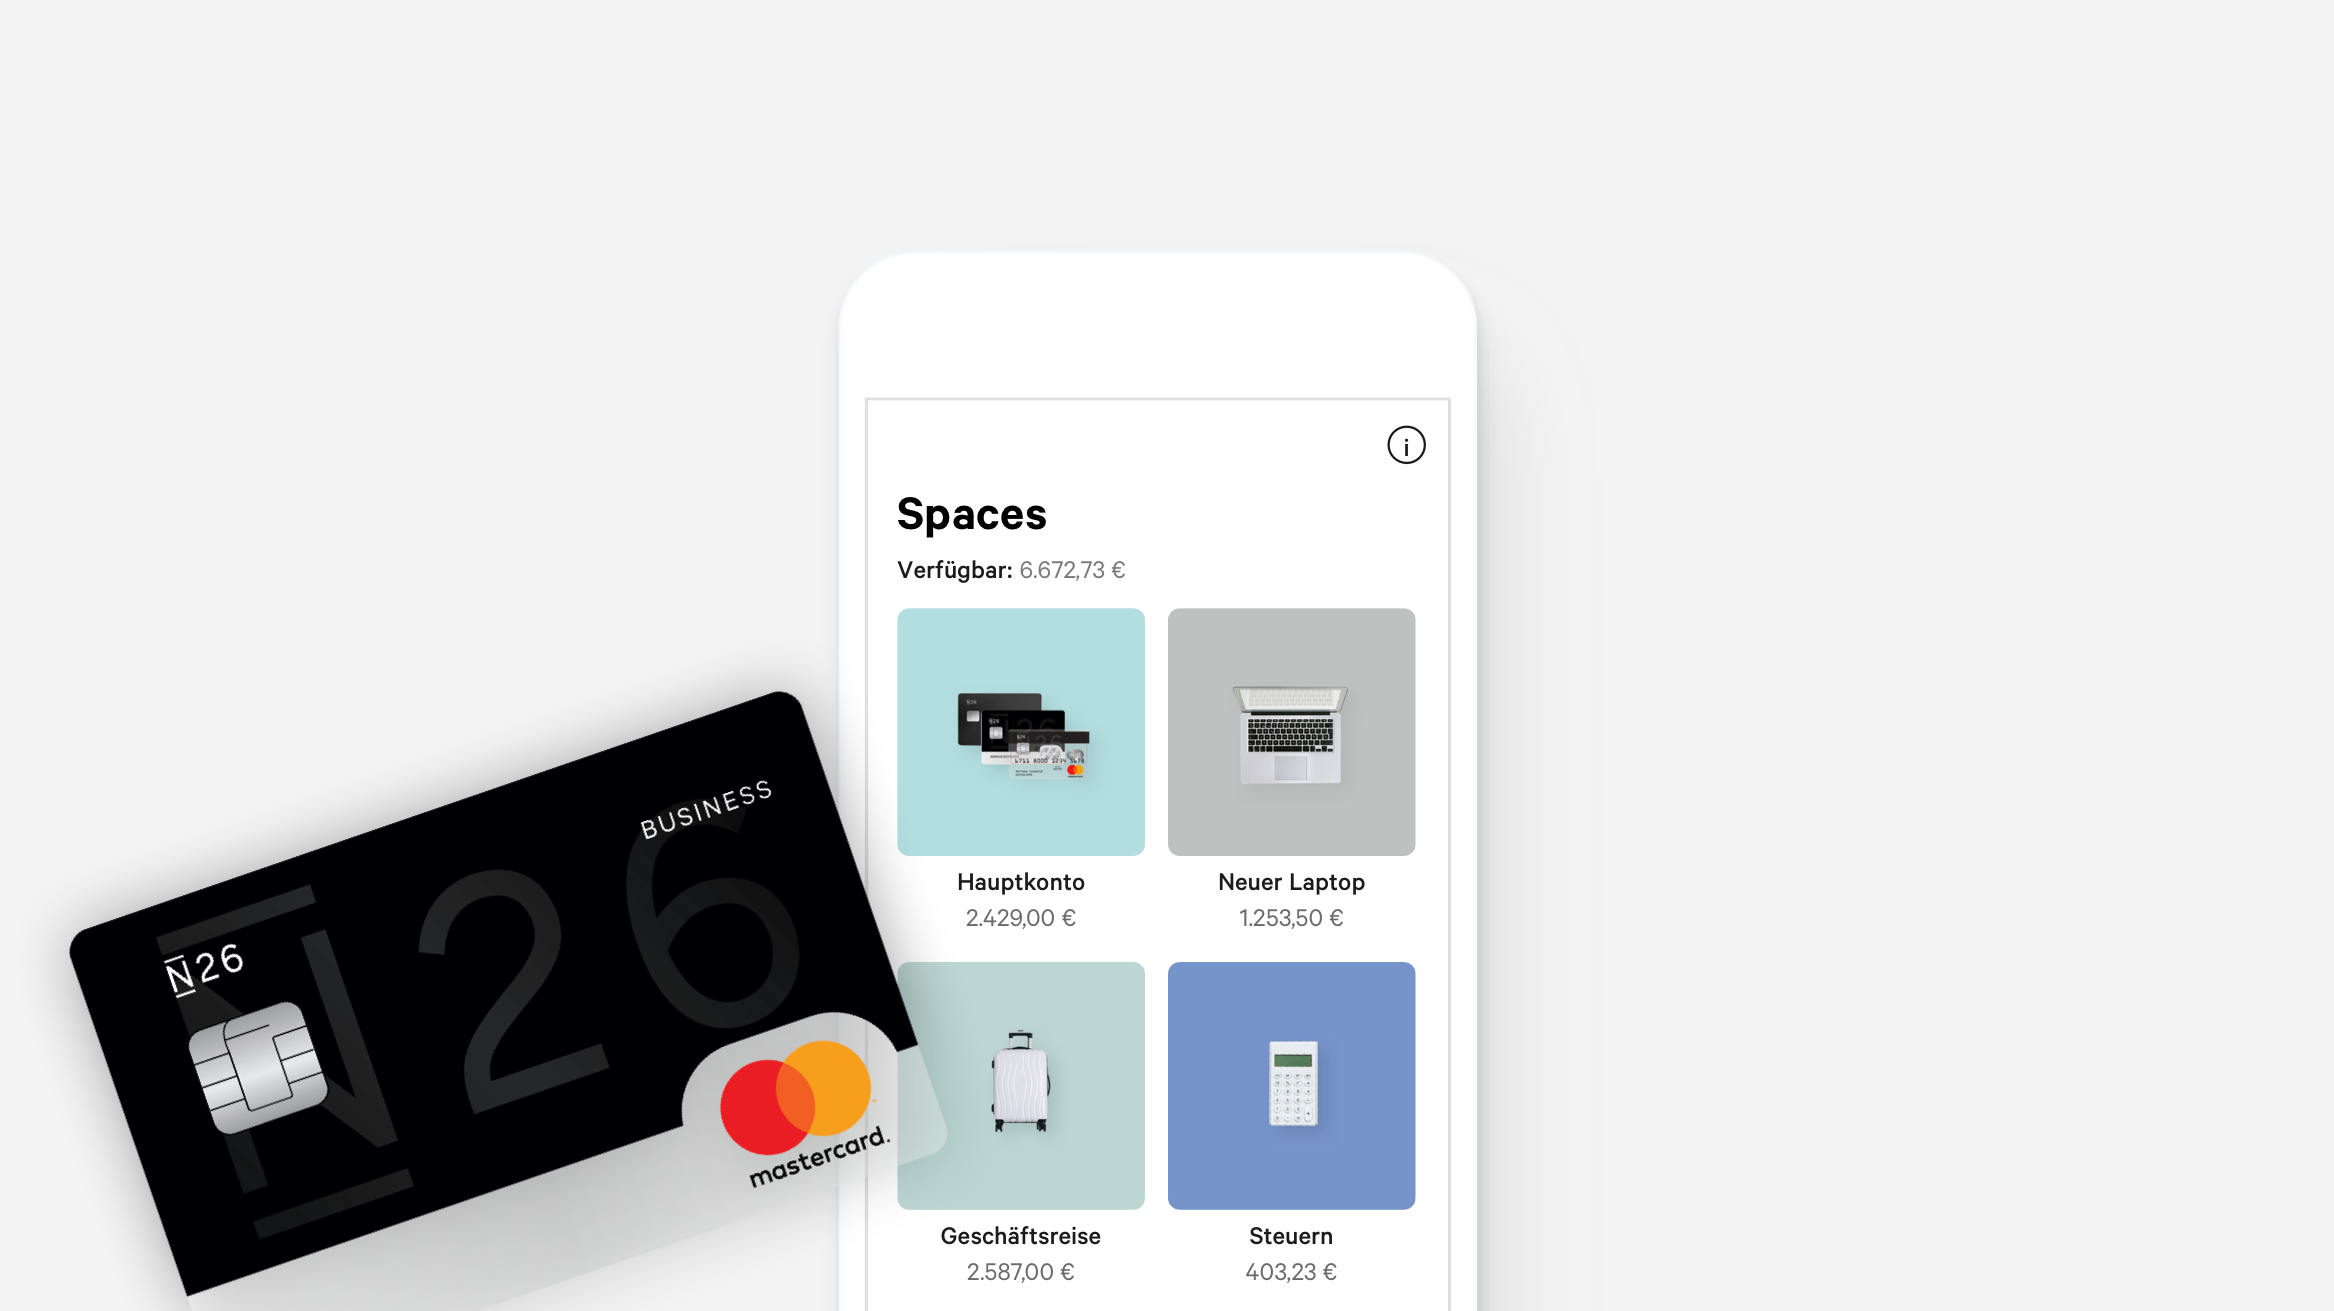 N26 Business Black spaces